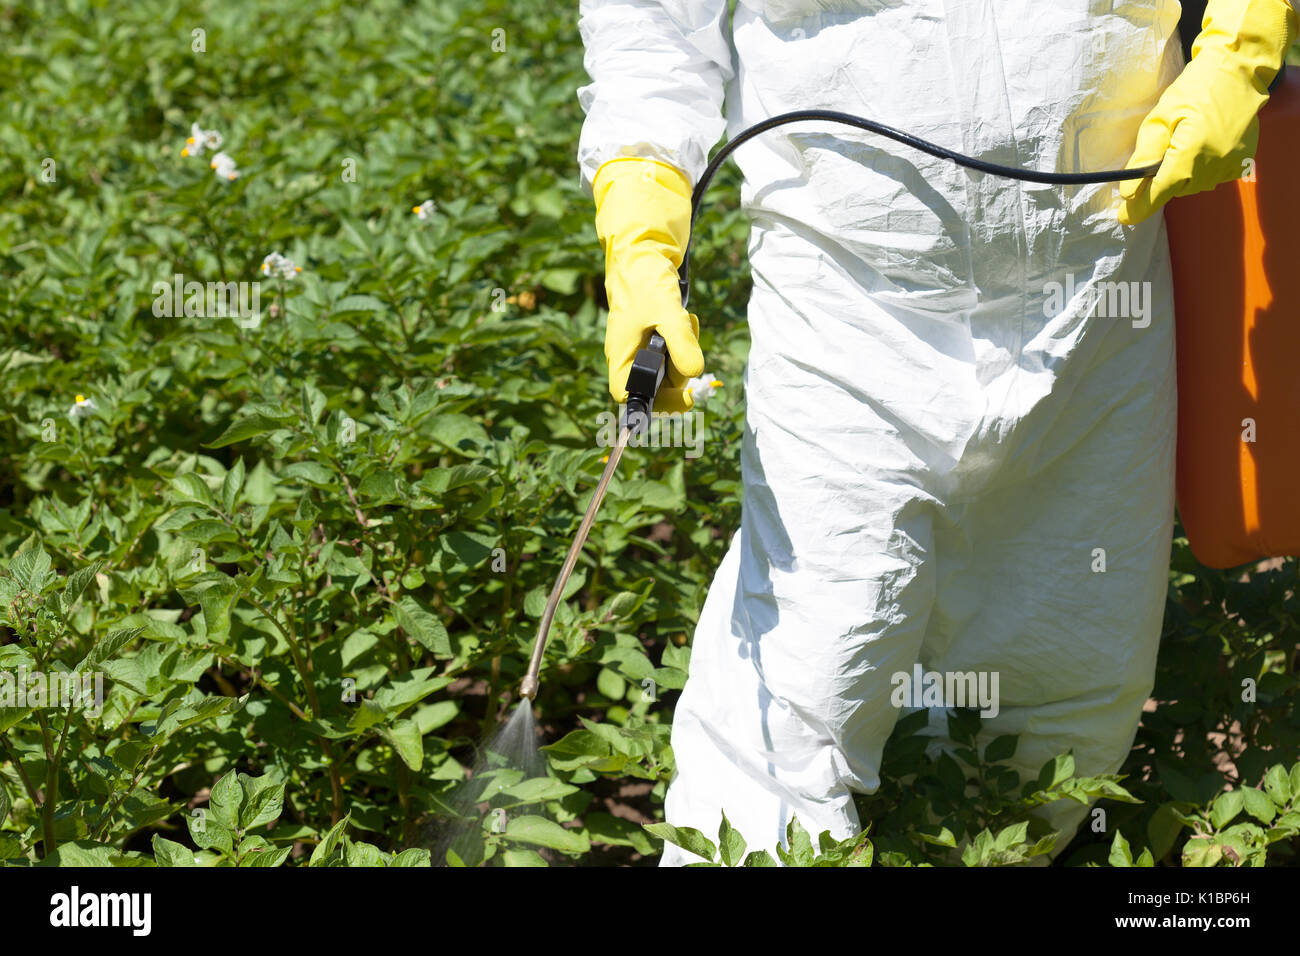 Spraying Insecticides Stock Photos Spraying Insecticides Stock Images Alamy